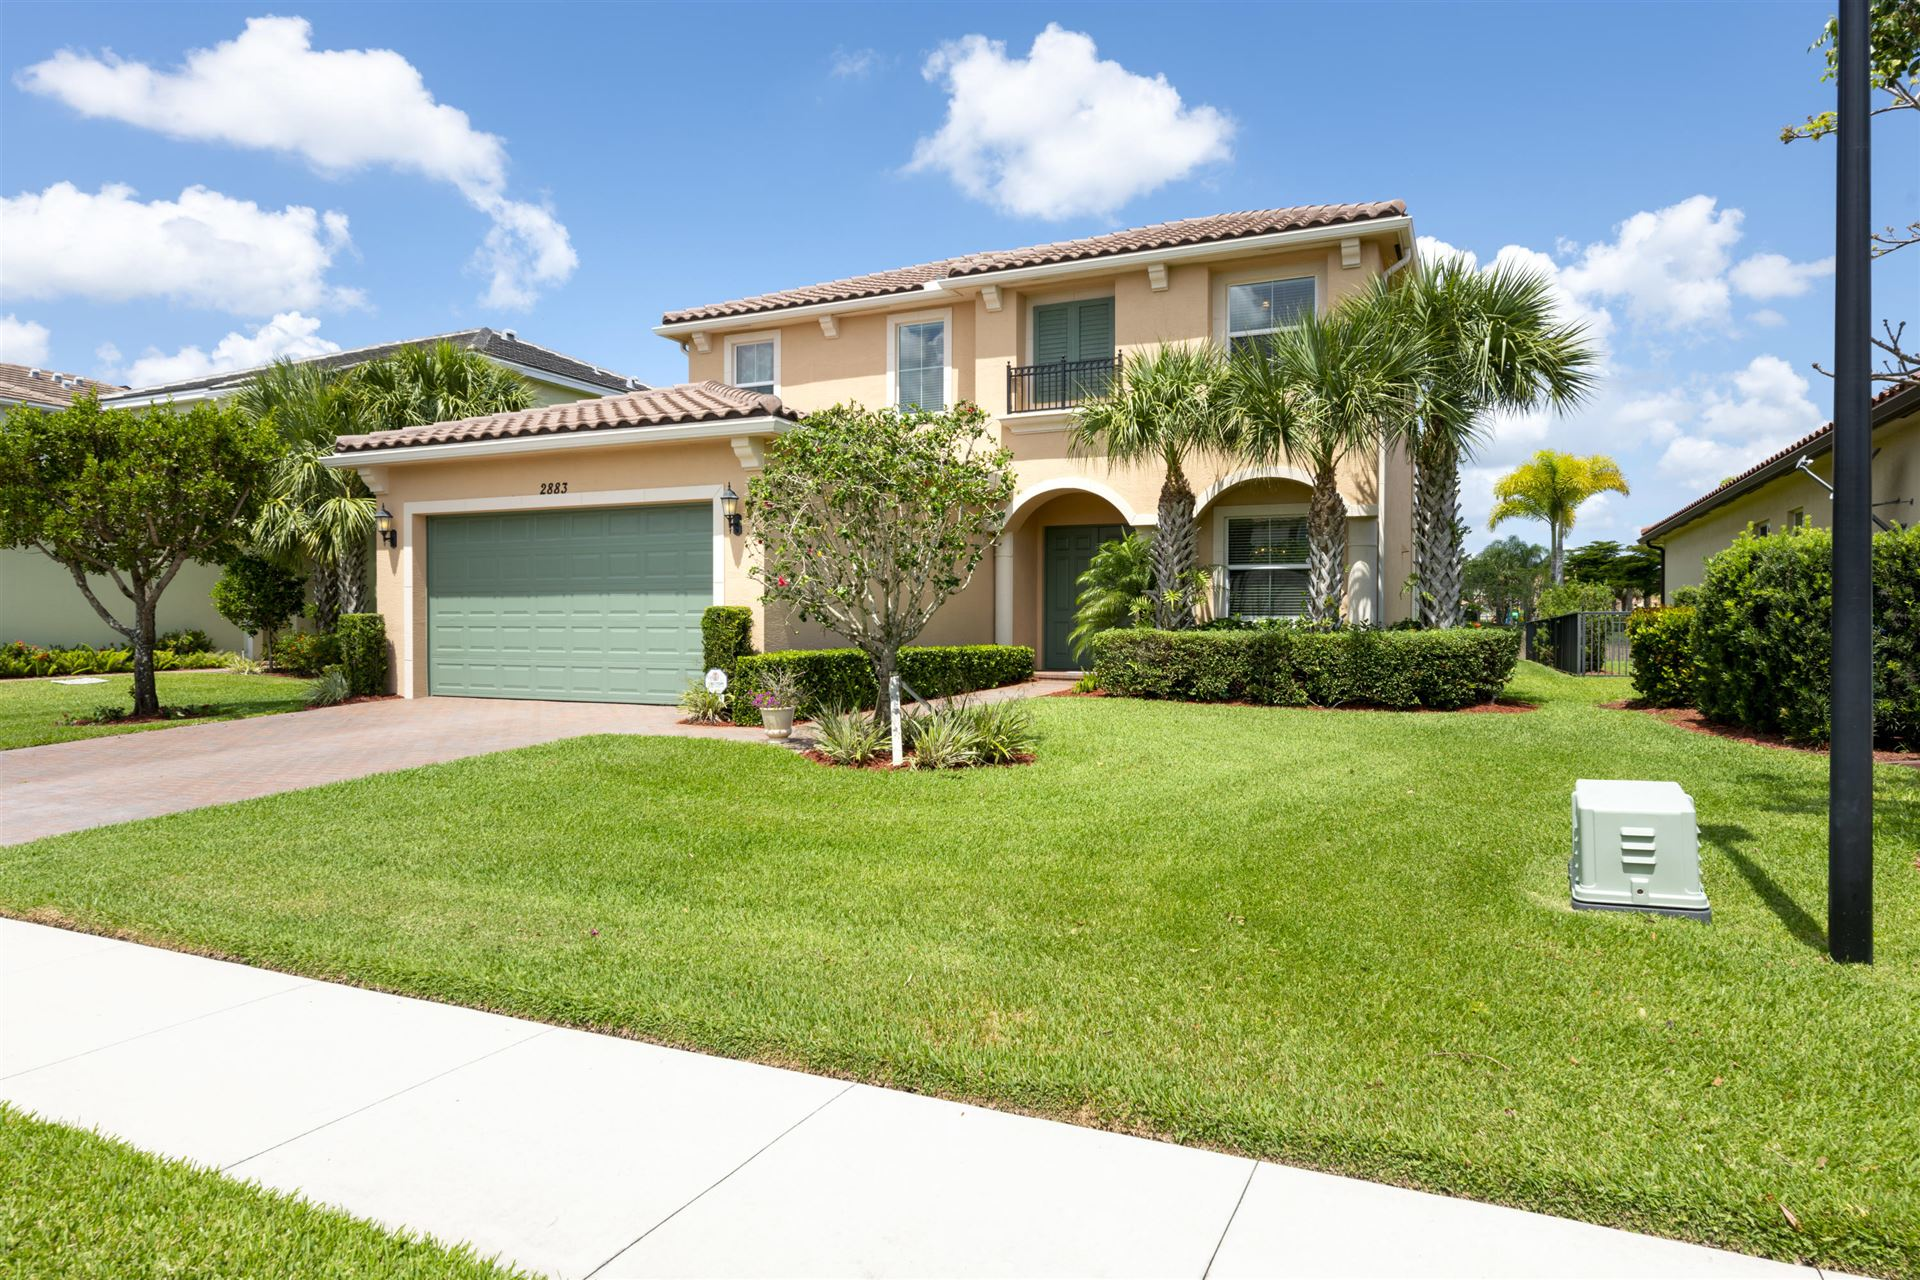 2883 Bellarosa Circle, Royal Palm Beach, FL 33411 - MLS#: RX-10715732